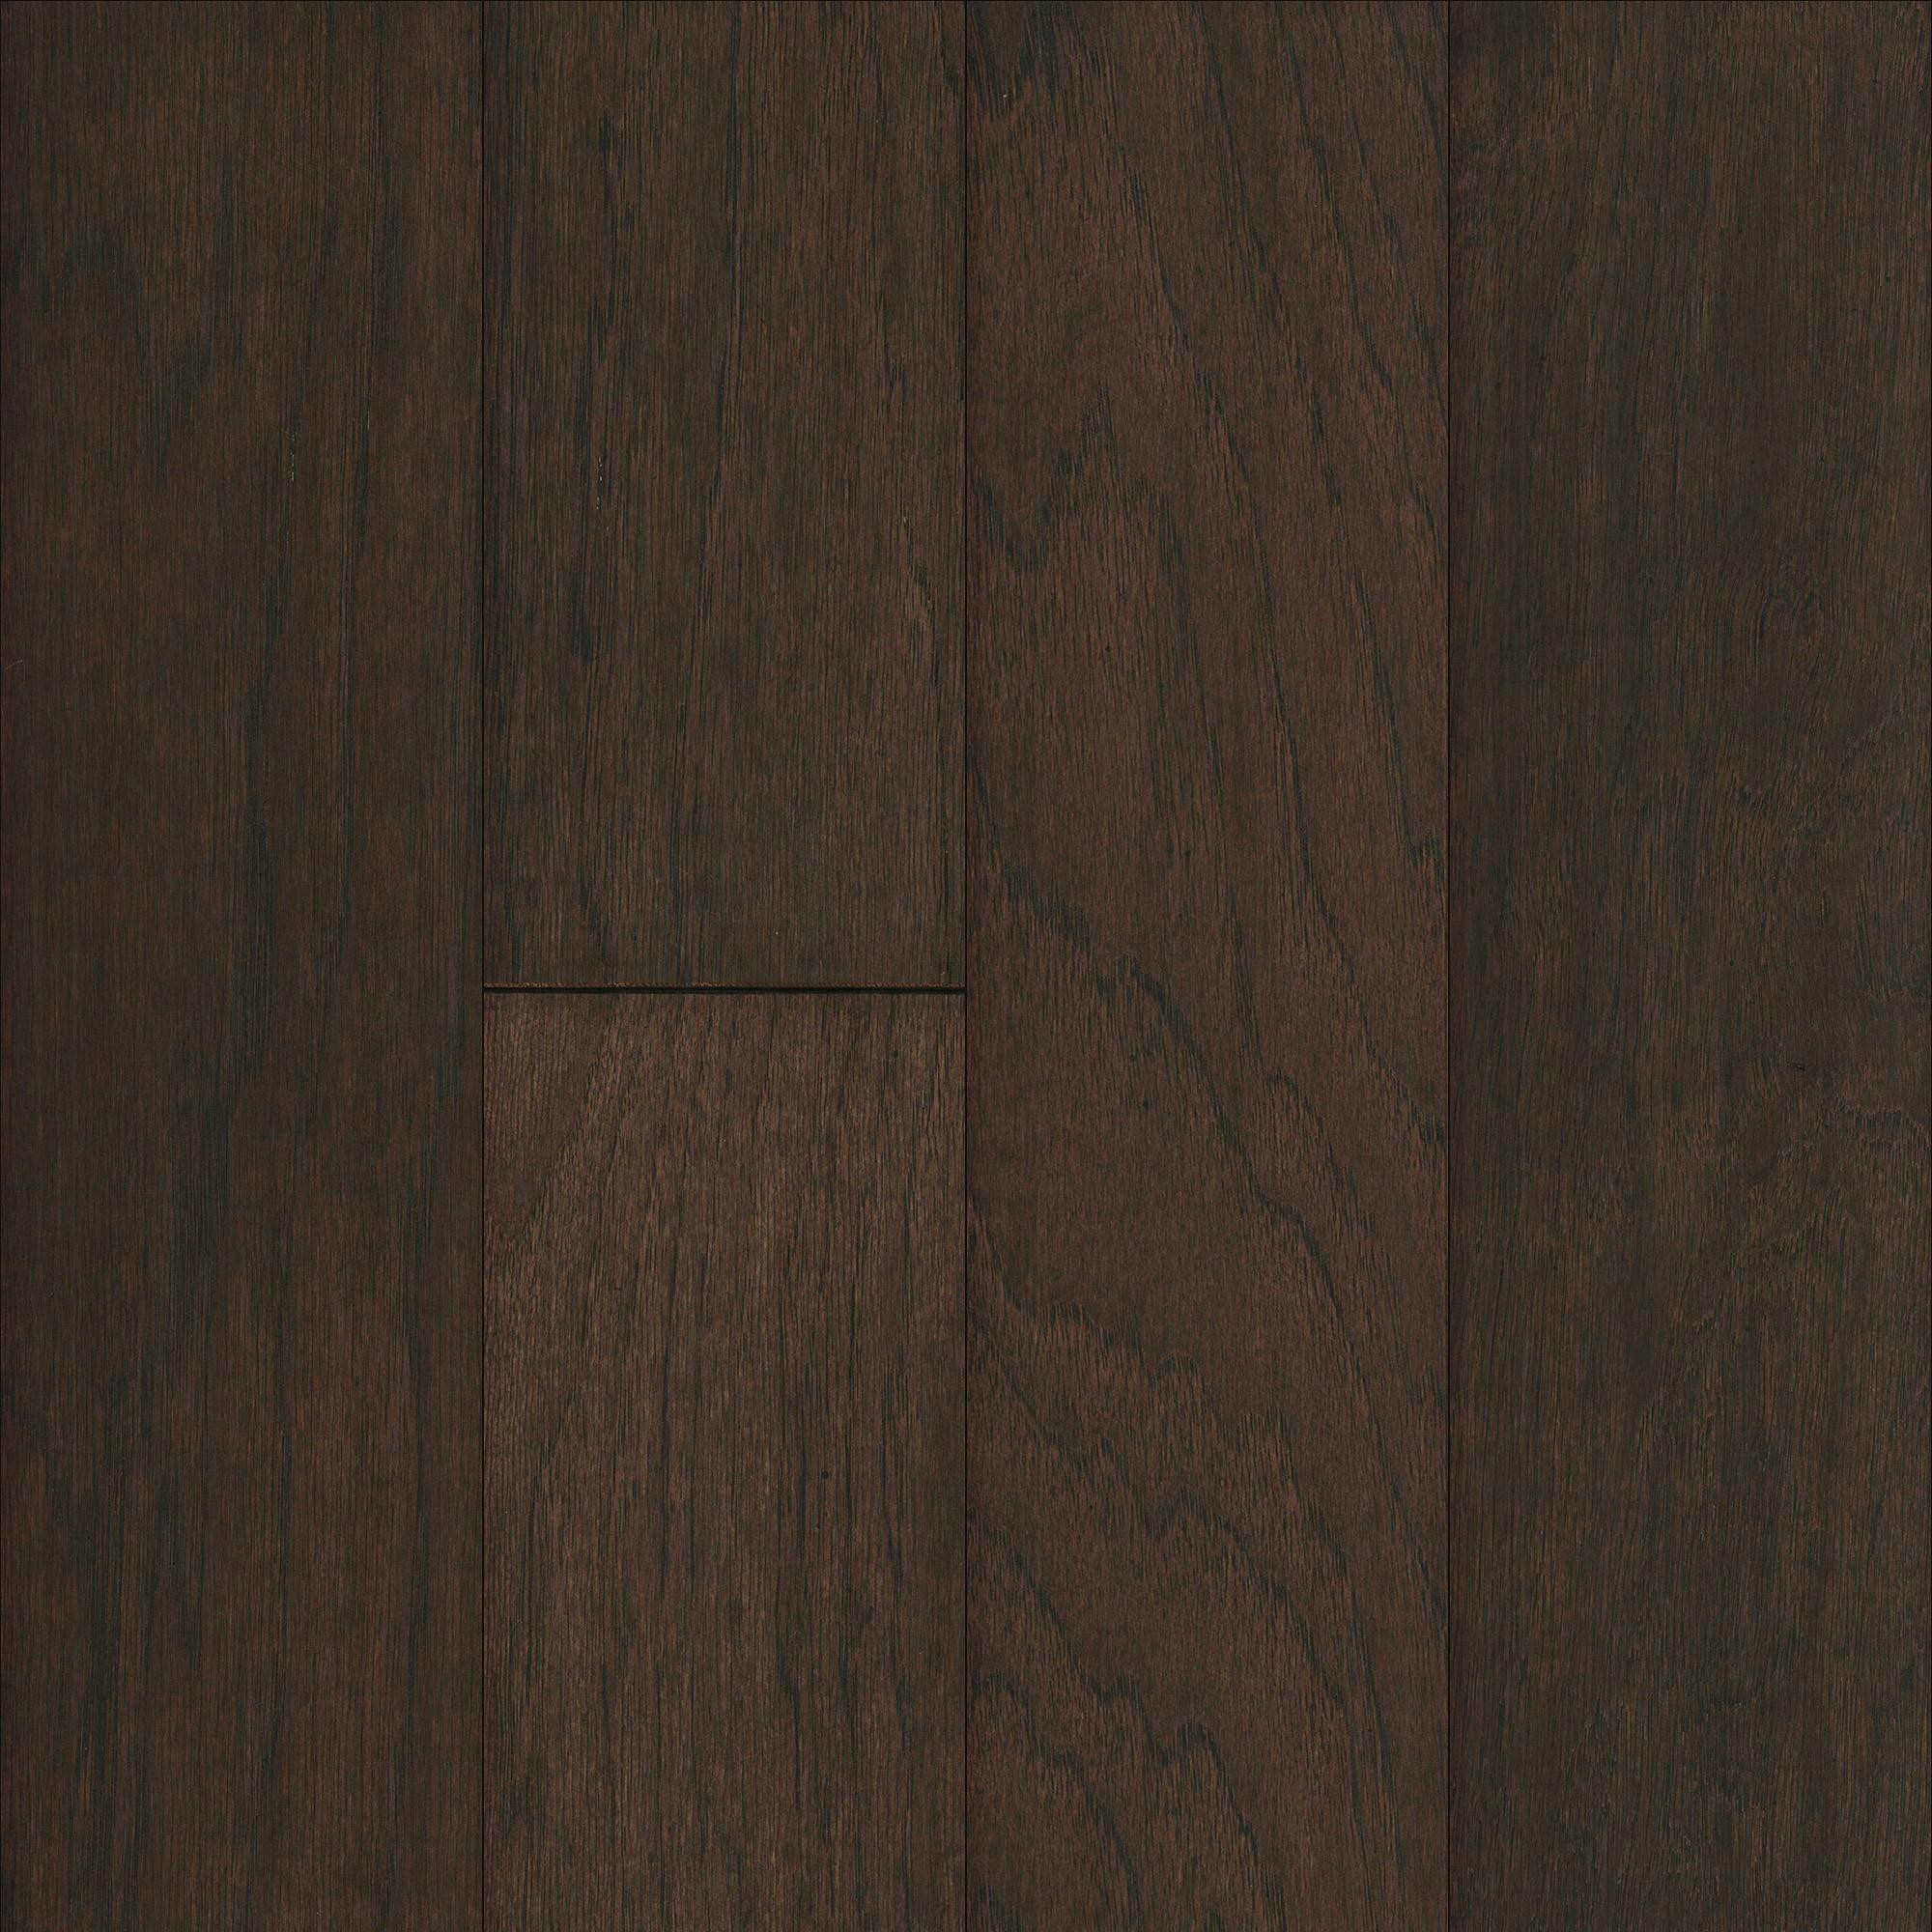 2 1 4 inch hardwood flooring of mullican devonshire hickory espresso 5 engineered hardwood flooring with regard to hickory espresso 5 x 40 2000 a